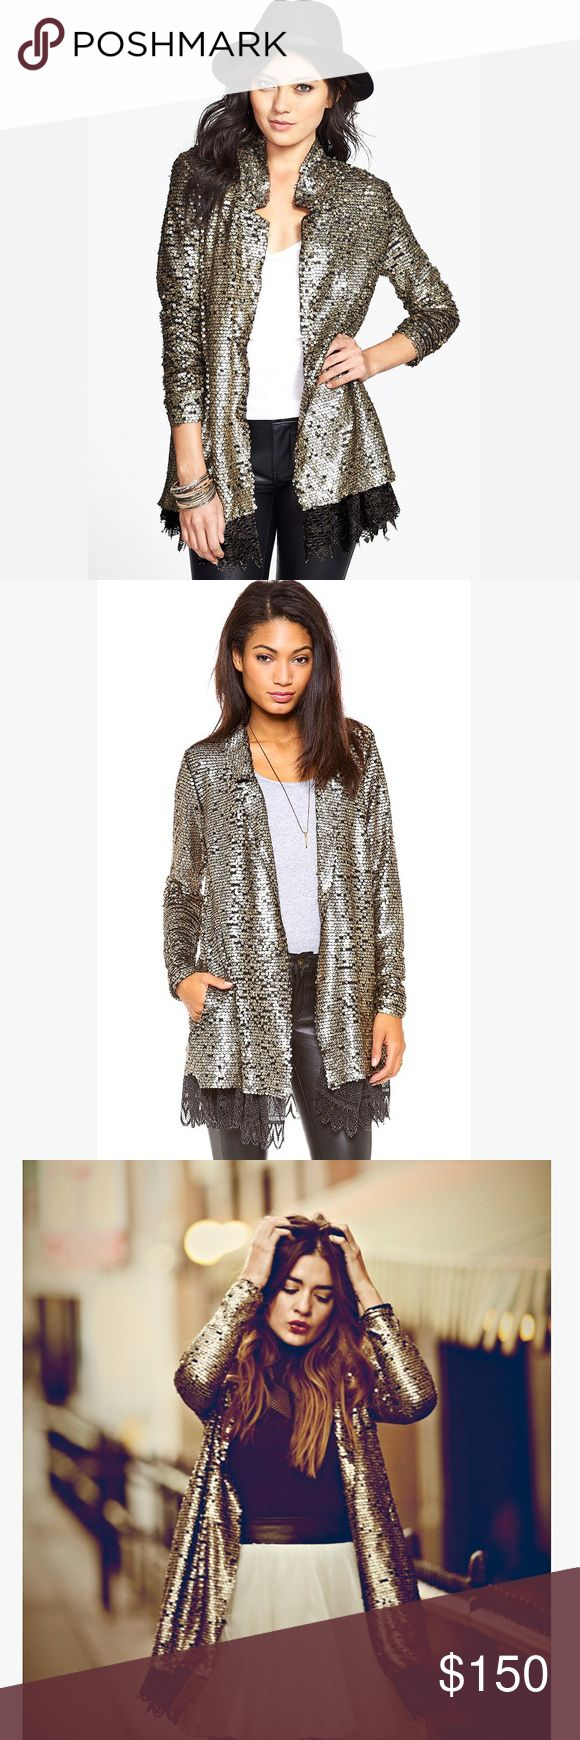 Free people gold sequin lace trim blazer jacket GORGEOUS perfect condition Blazer or jacket covered in tarnished or rusted looking gold sequins, and lined with a black lace trim along the bottom. Tags are no longer attached but it's brand new and never worn Free People Jackets & Coats Blazers